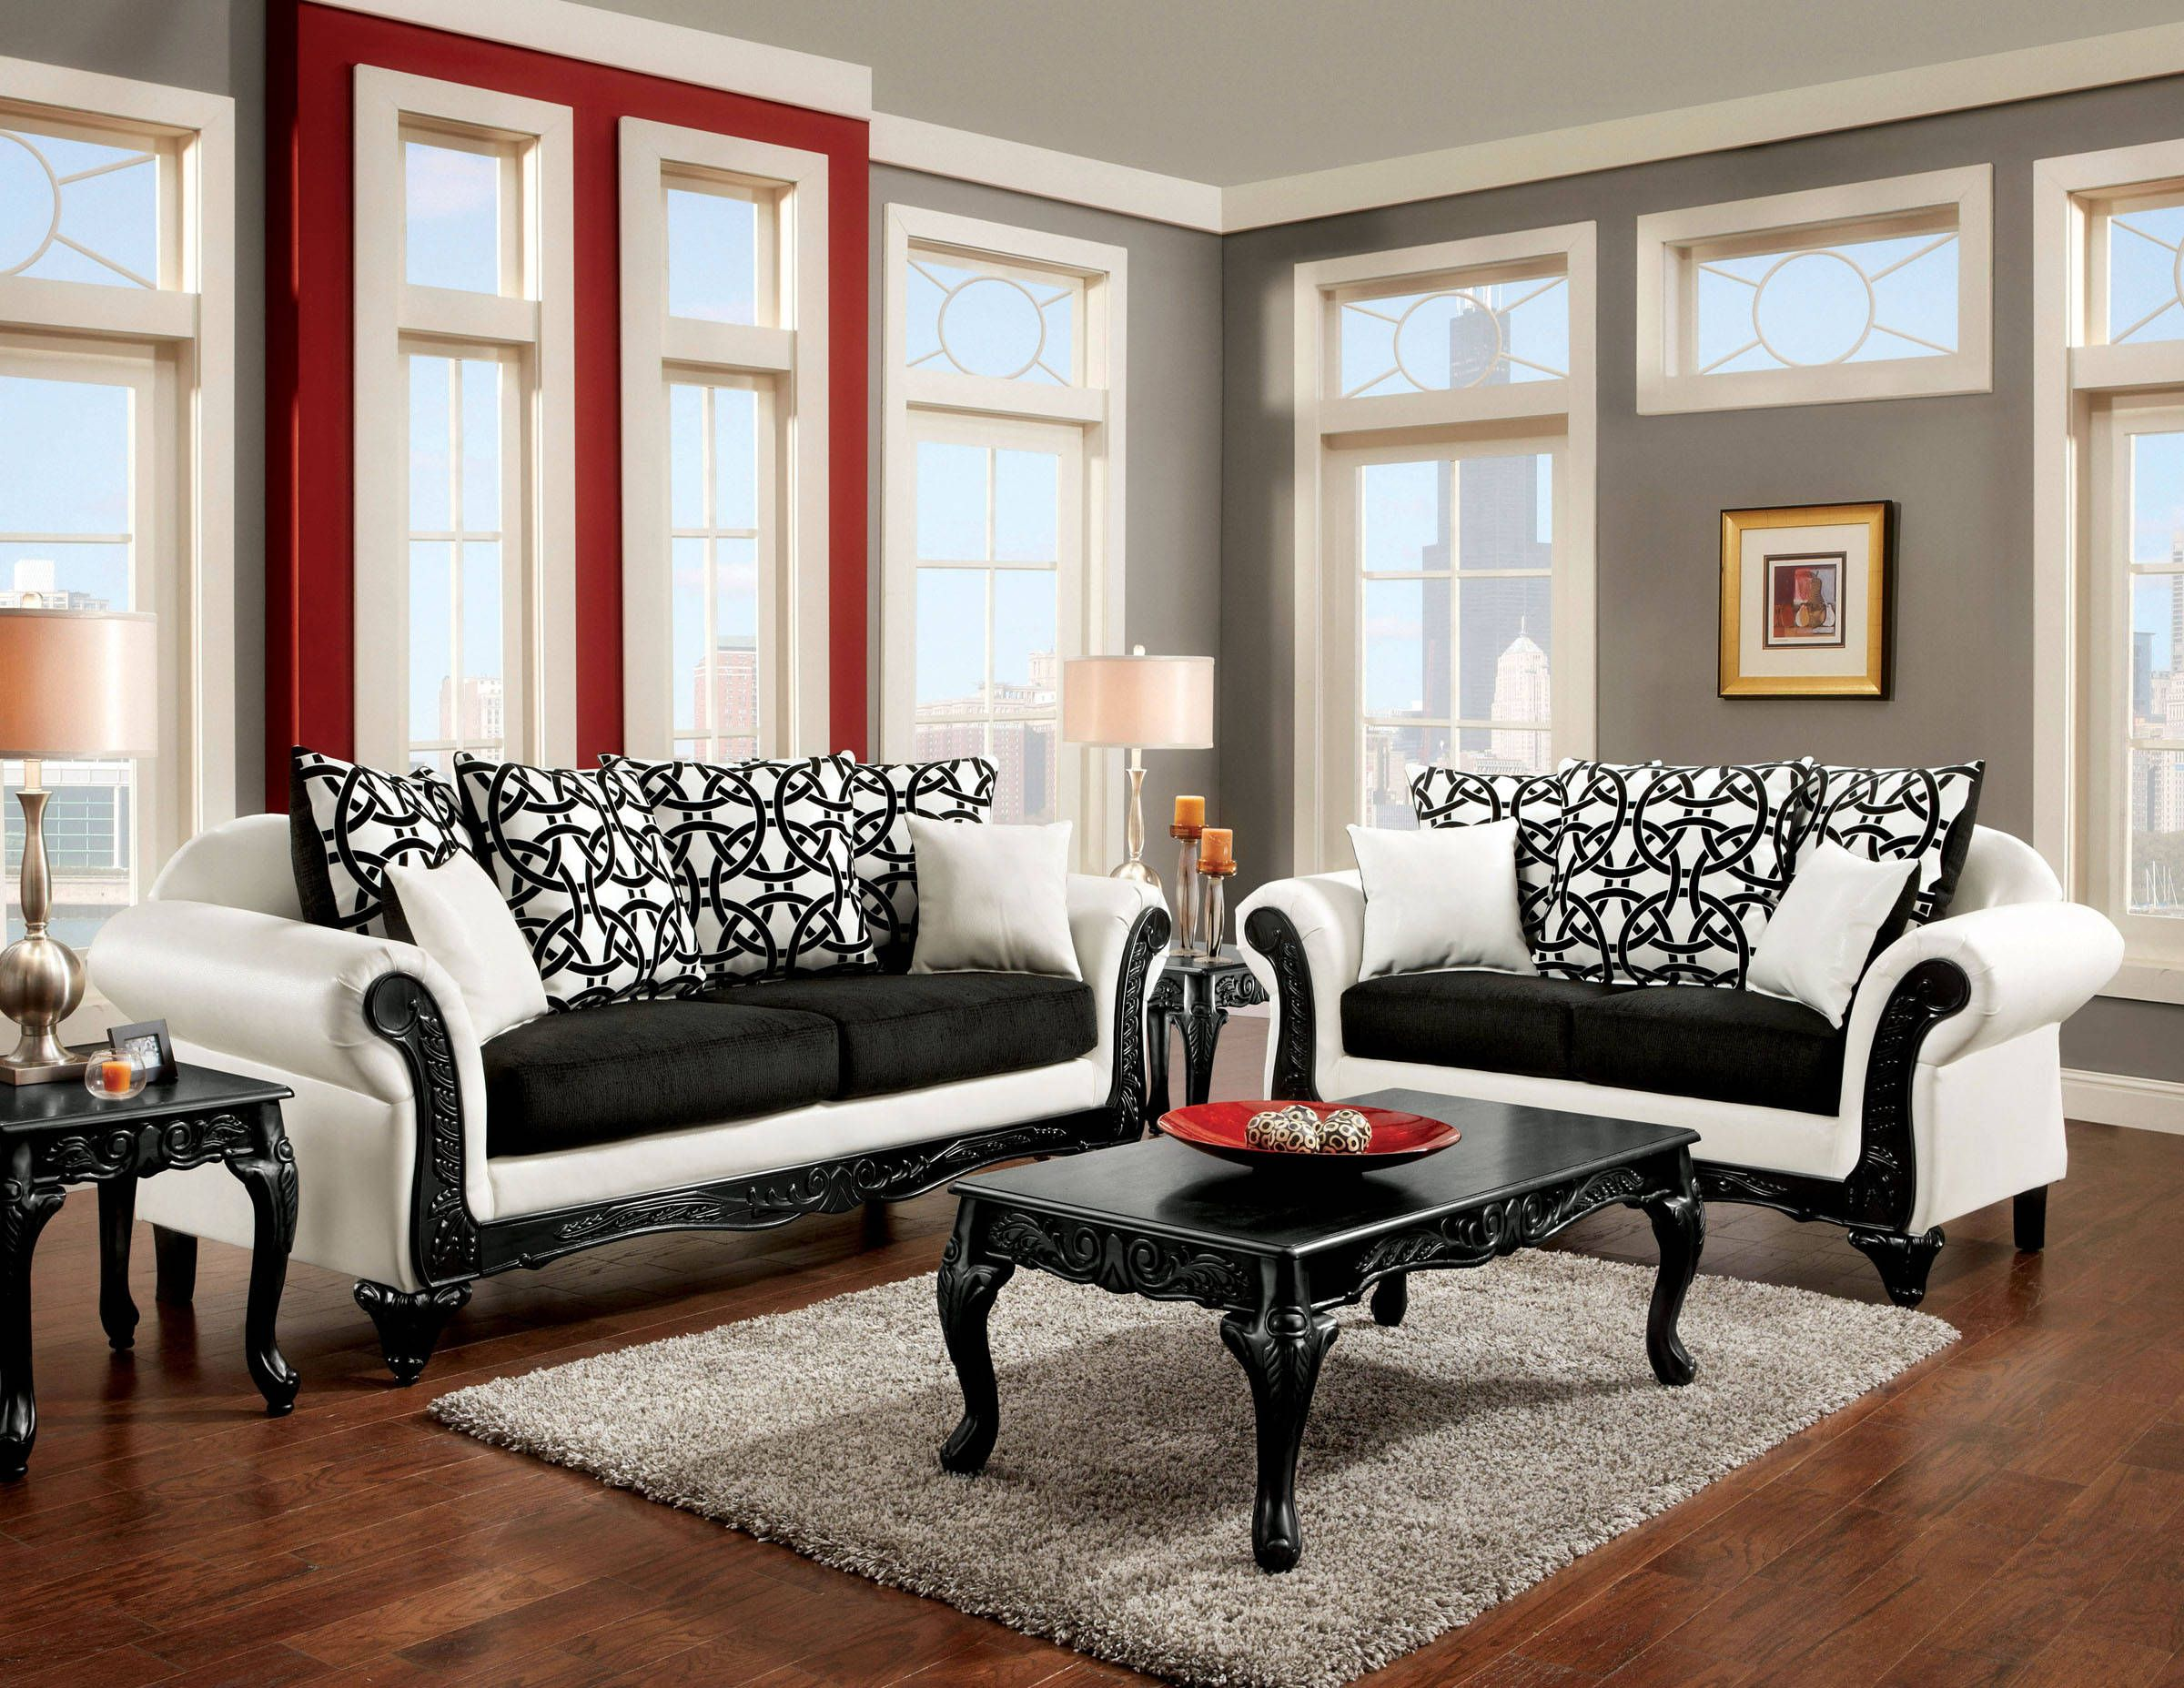 Furniture of america dolphy sofa white fabrics living room sets